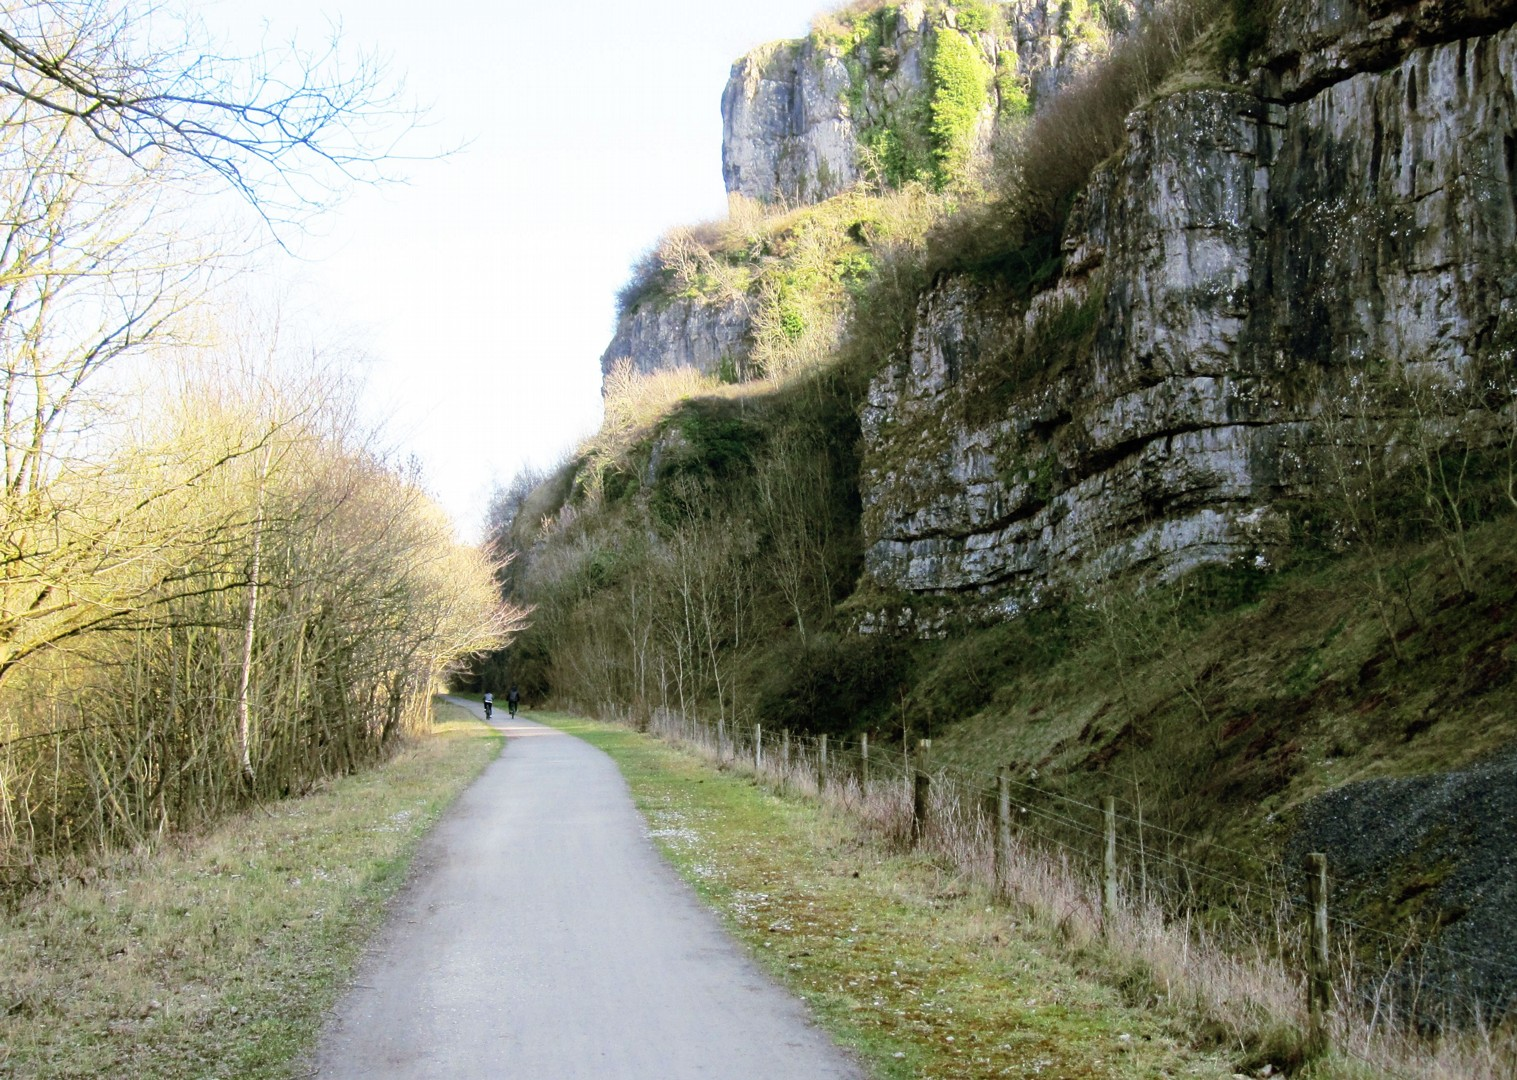 IMG_4469.JPG - UK - Derbyshire Dales - Dovedale - Self-Guided Leisure Cycling Holiday - Leisure Cycling